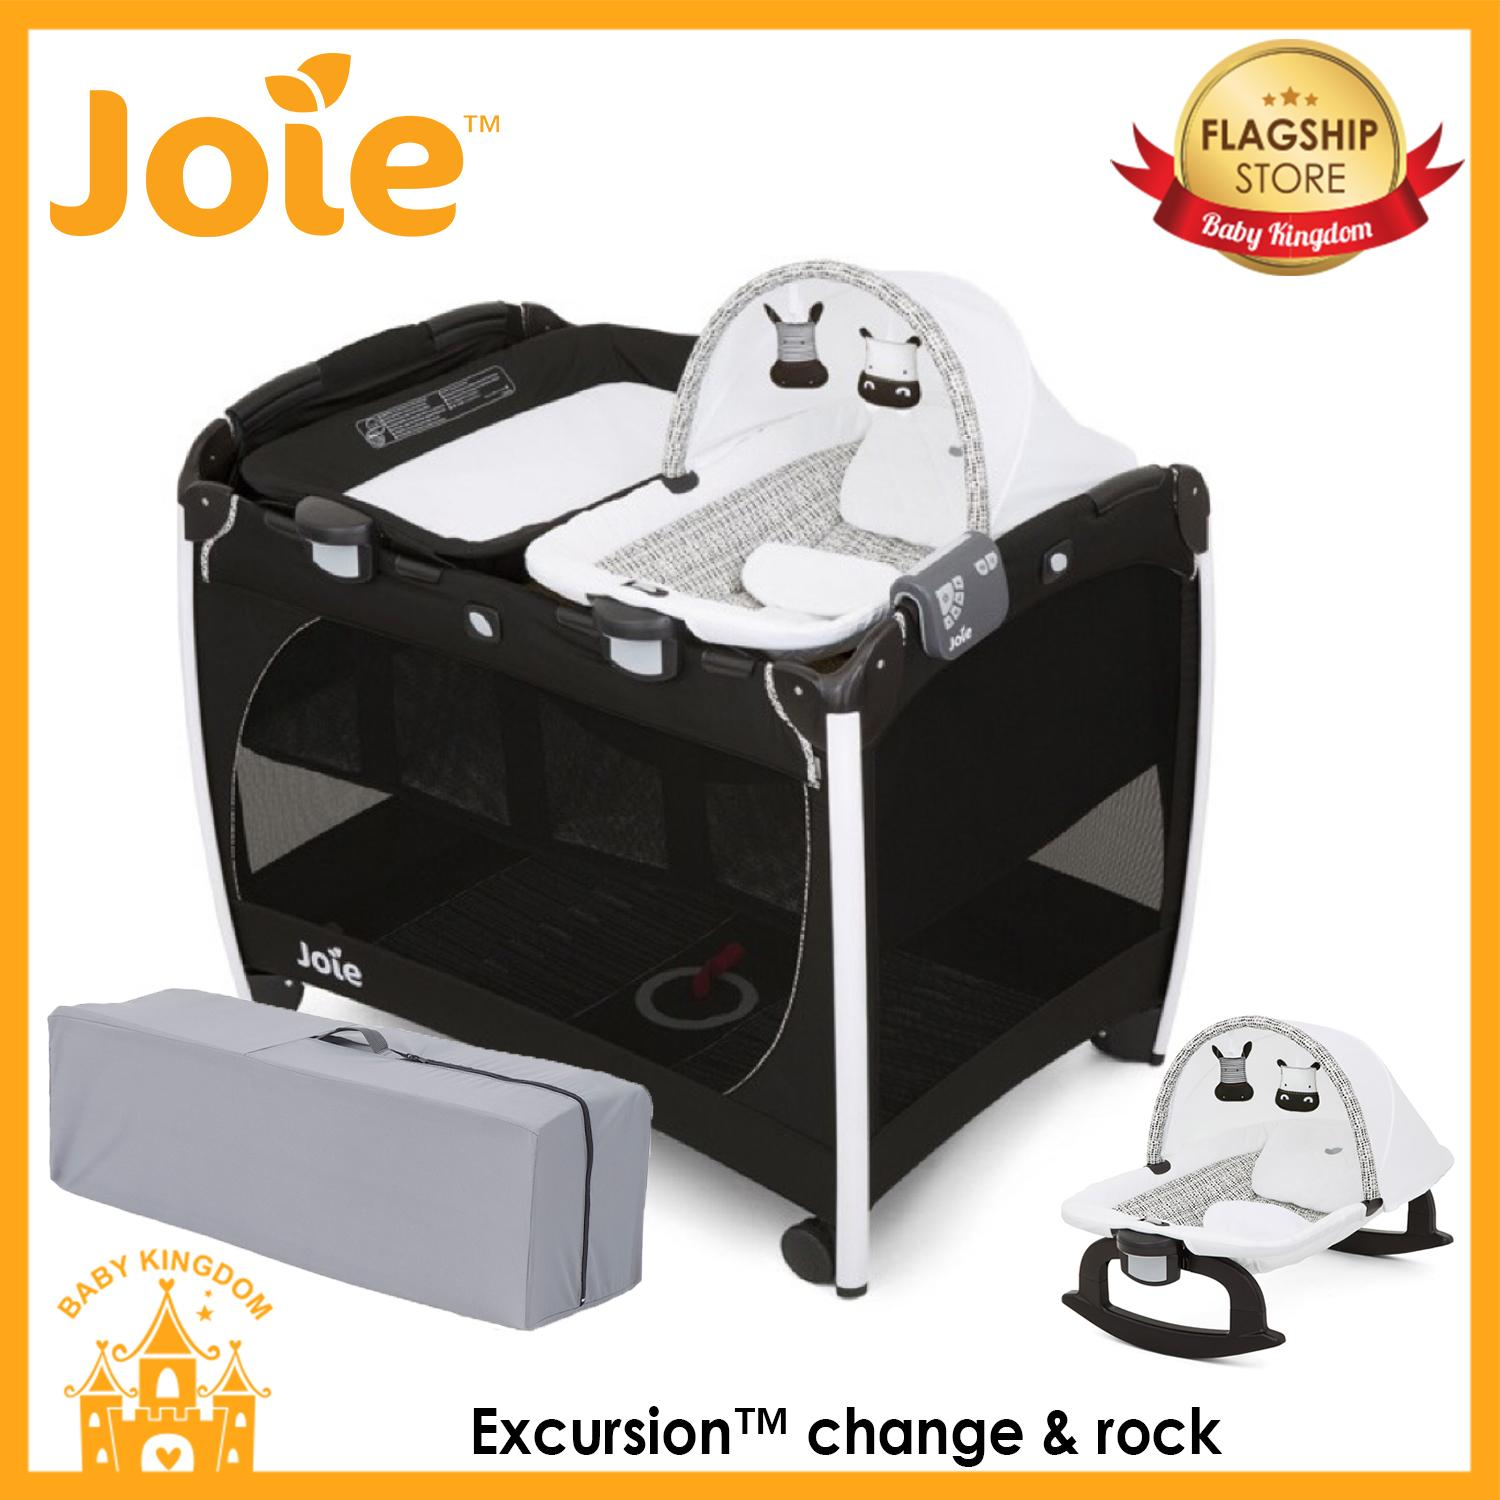 Joie Excursion Change & Rock By Baby Kingdom.